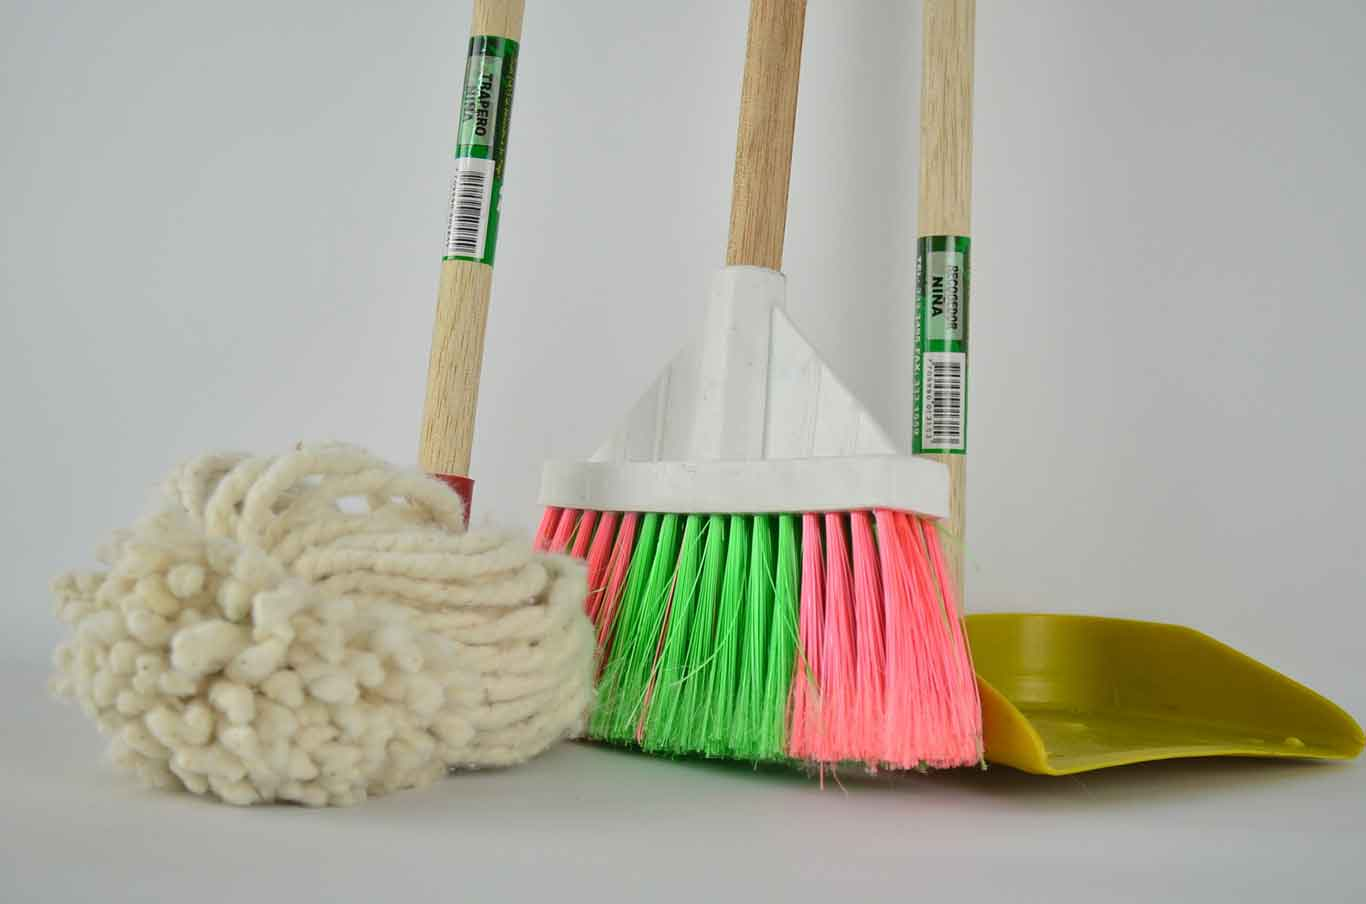 Commercial Janitorial Services - RoMaCo Building Services